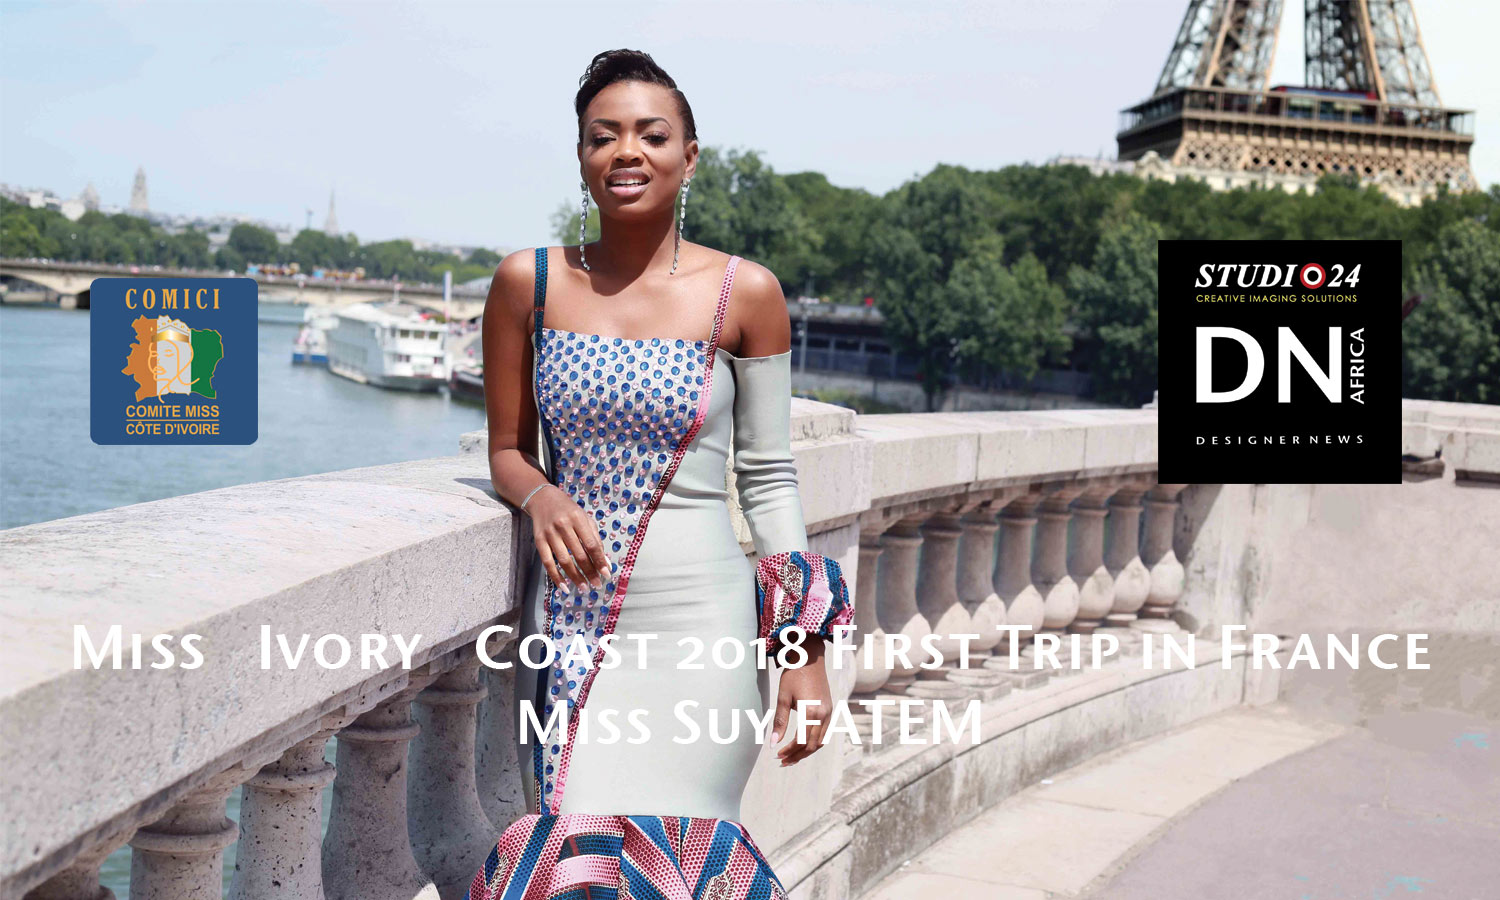 AFRICAN FASHION STYLE MAGAZINE - MISS IVORY COAST 2018 - MISS MARIE-DANIELLE SUY FATEM - DN AFRICA - STUDIO 24 NIGERIA